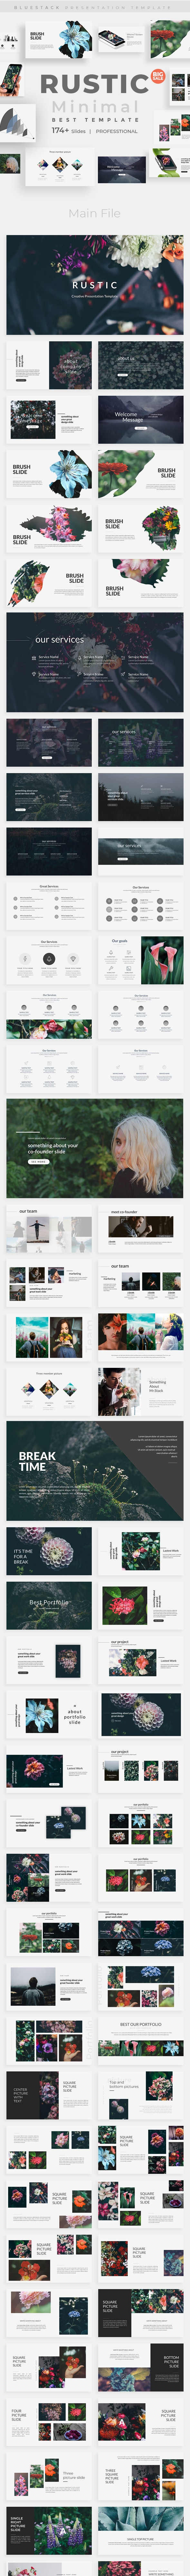 Rustic Creative Powerpoint Template - Nature PowerPoint Templates